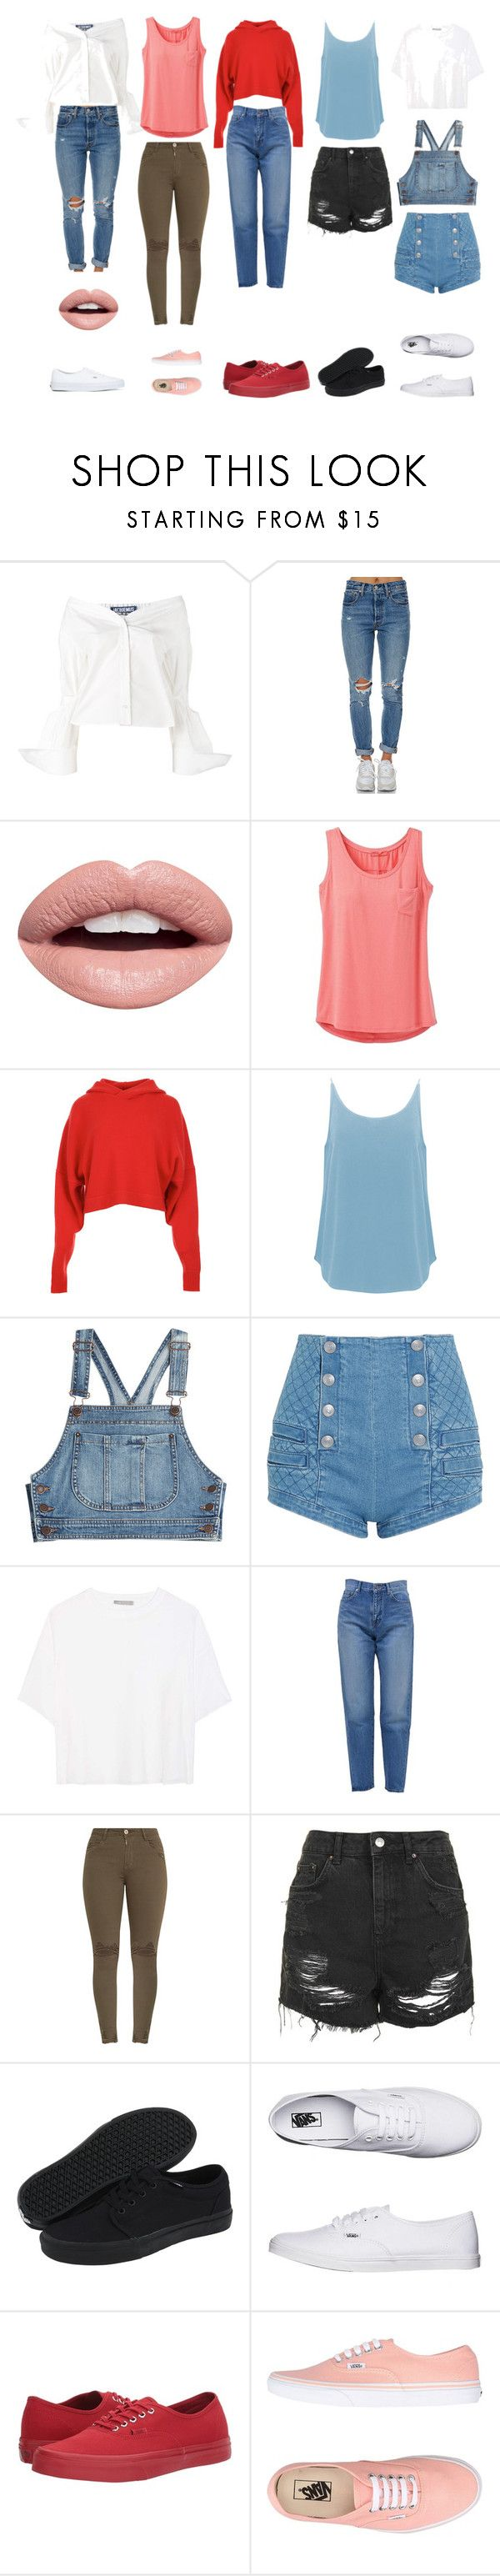 """""""Casual"""" by mc-crusher on Polyvore featuring Jacquemus, Levi's, Nevermind, prAna, TIBI, BA&SH, Moschino, Pierre Balmain, Vince and Yves Saint Laurent"""